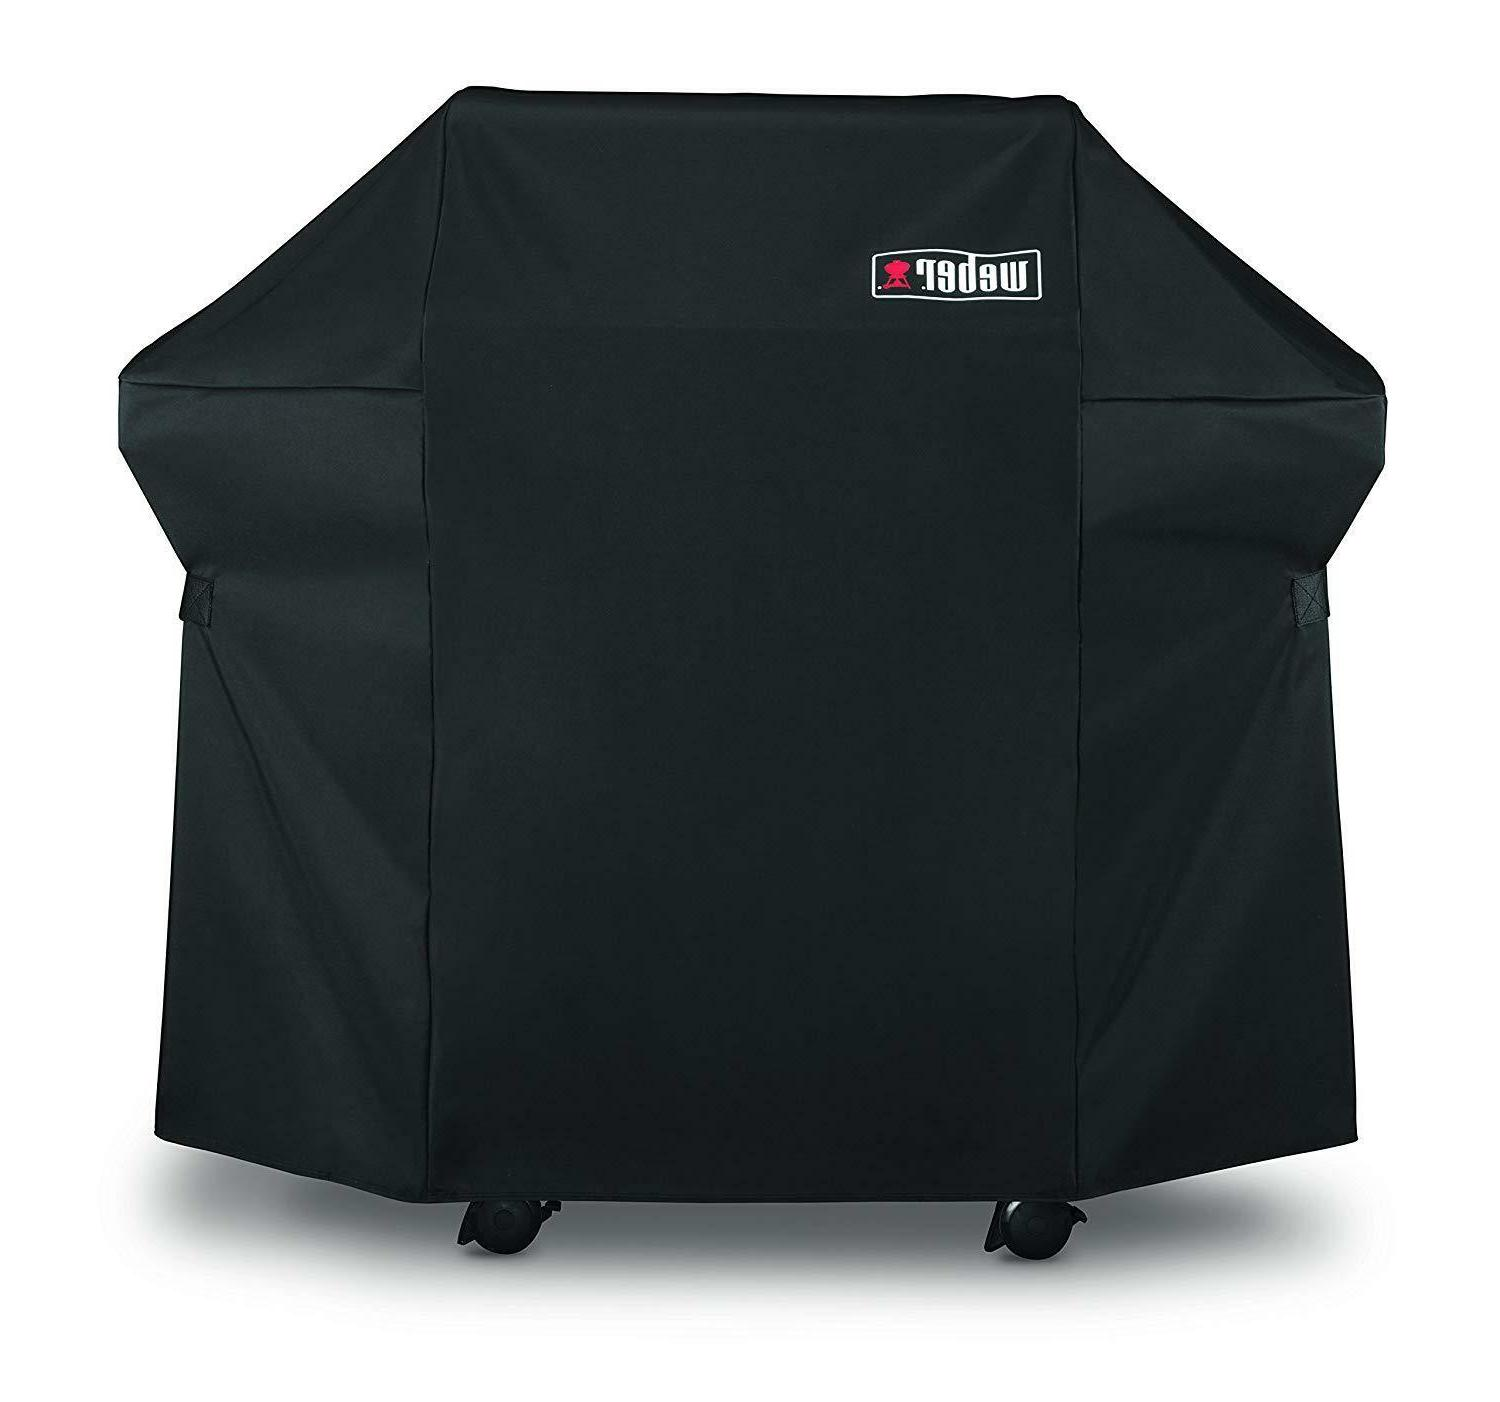 Weber 7106 Grill Black Storage For Spirit and